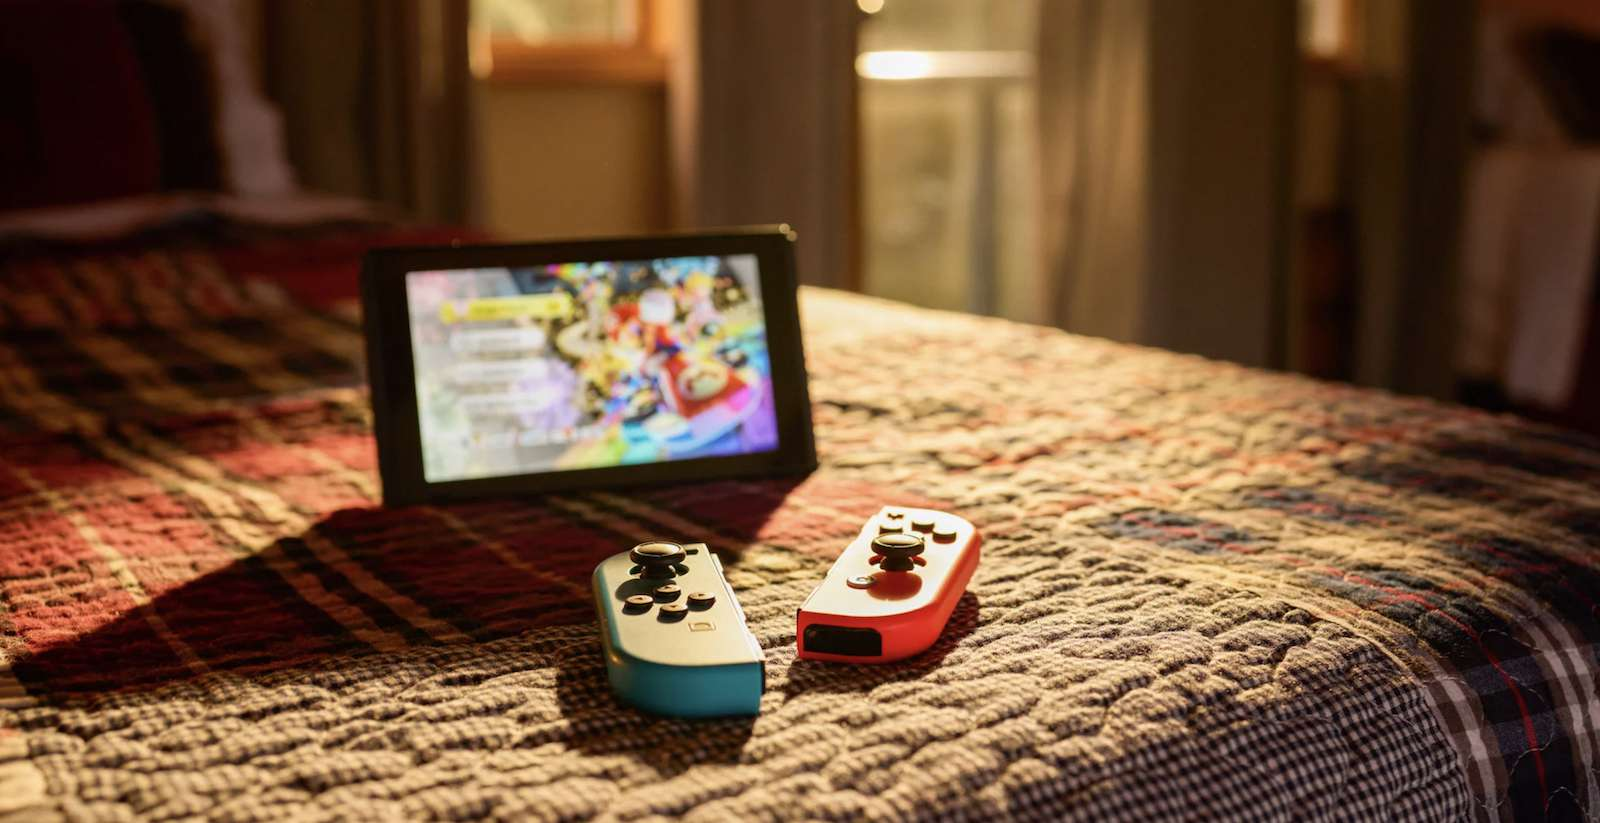 Nintendo Switch w/ kickstand and Joy-Con controllers resting on a bed